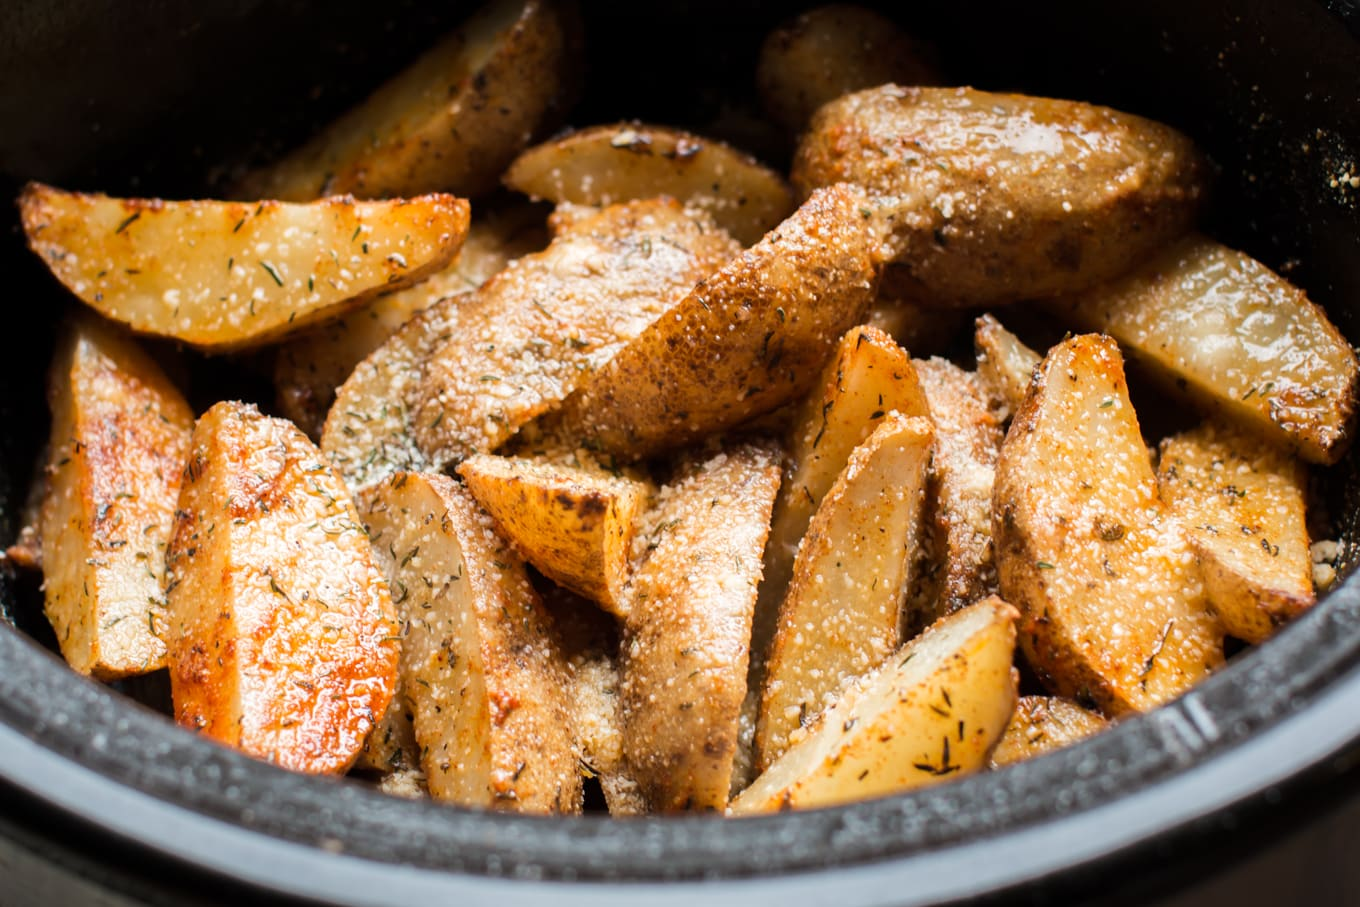 Close up of potato wedges in slow cooker.